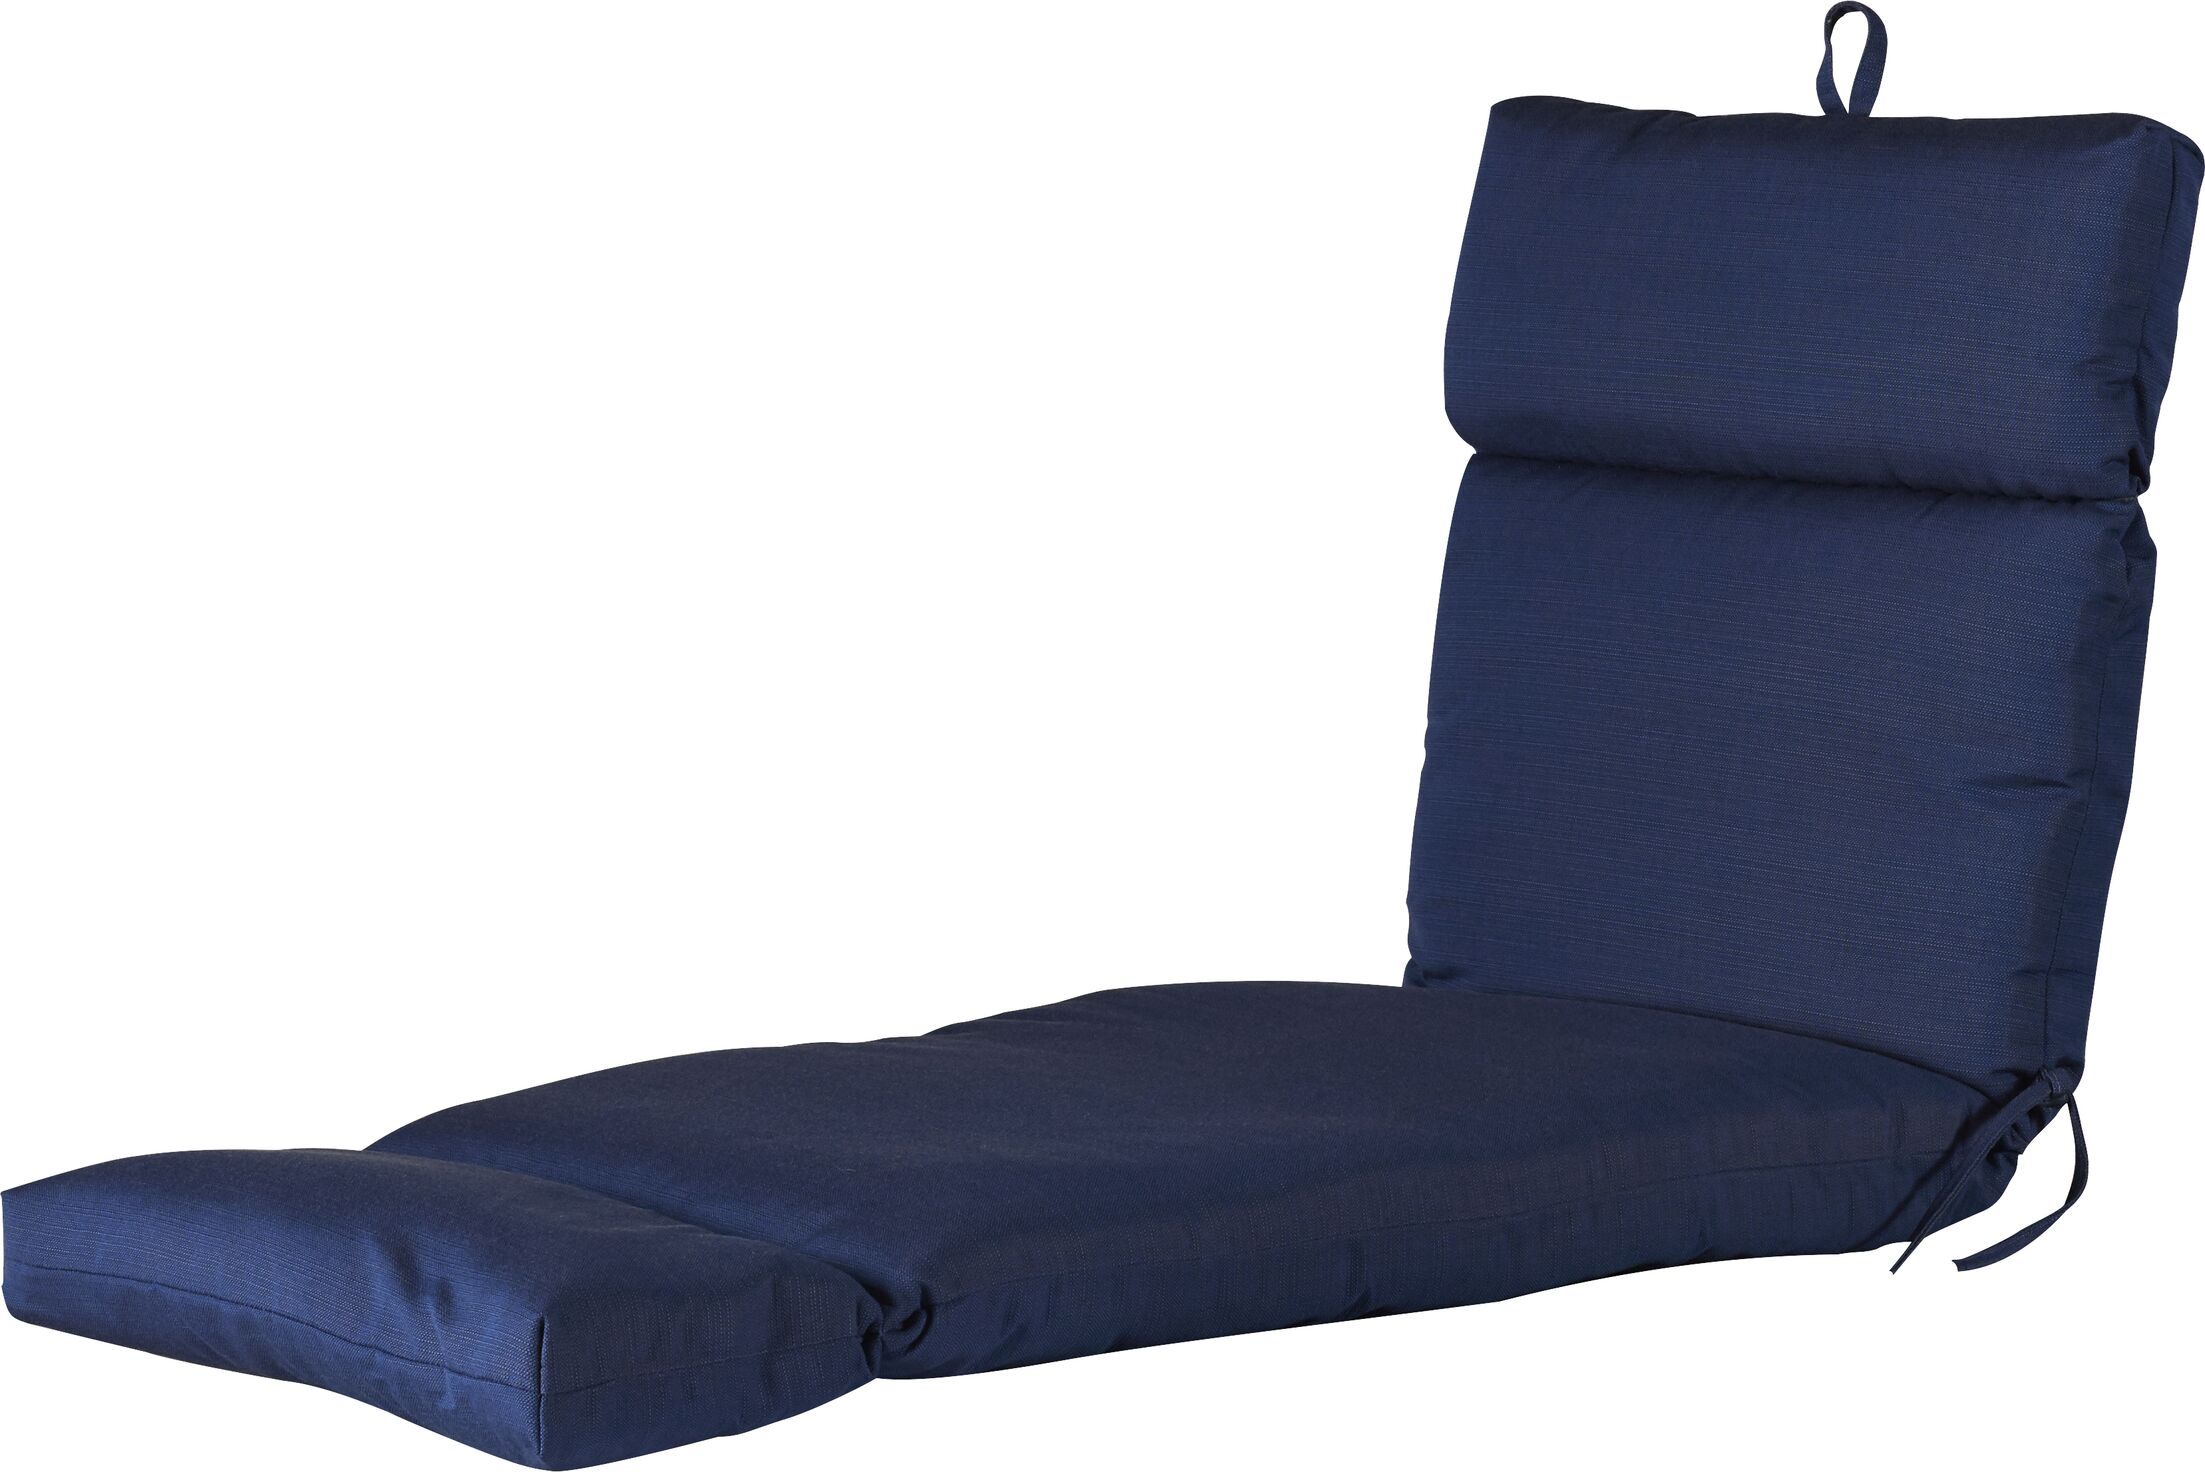 Indoor/Outdoor Polyester Sunbrella Chaise Lounge Cushion Fabric: Echo Midnight